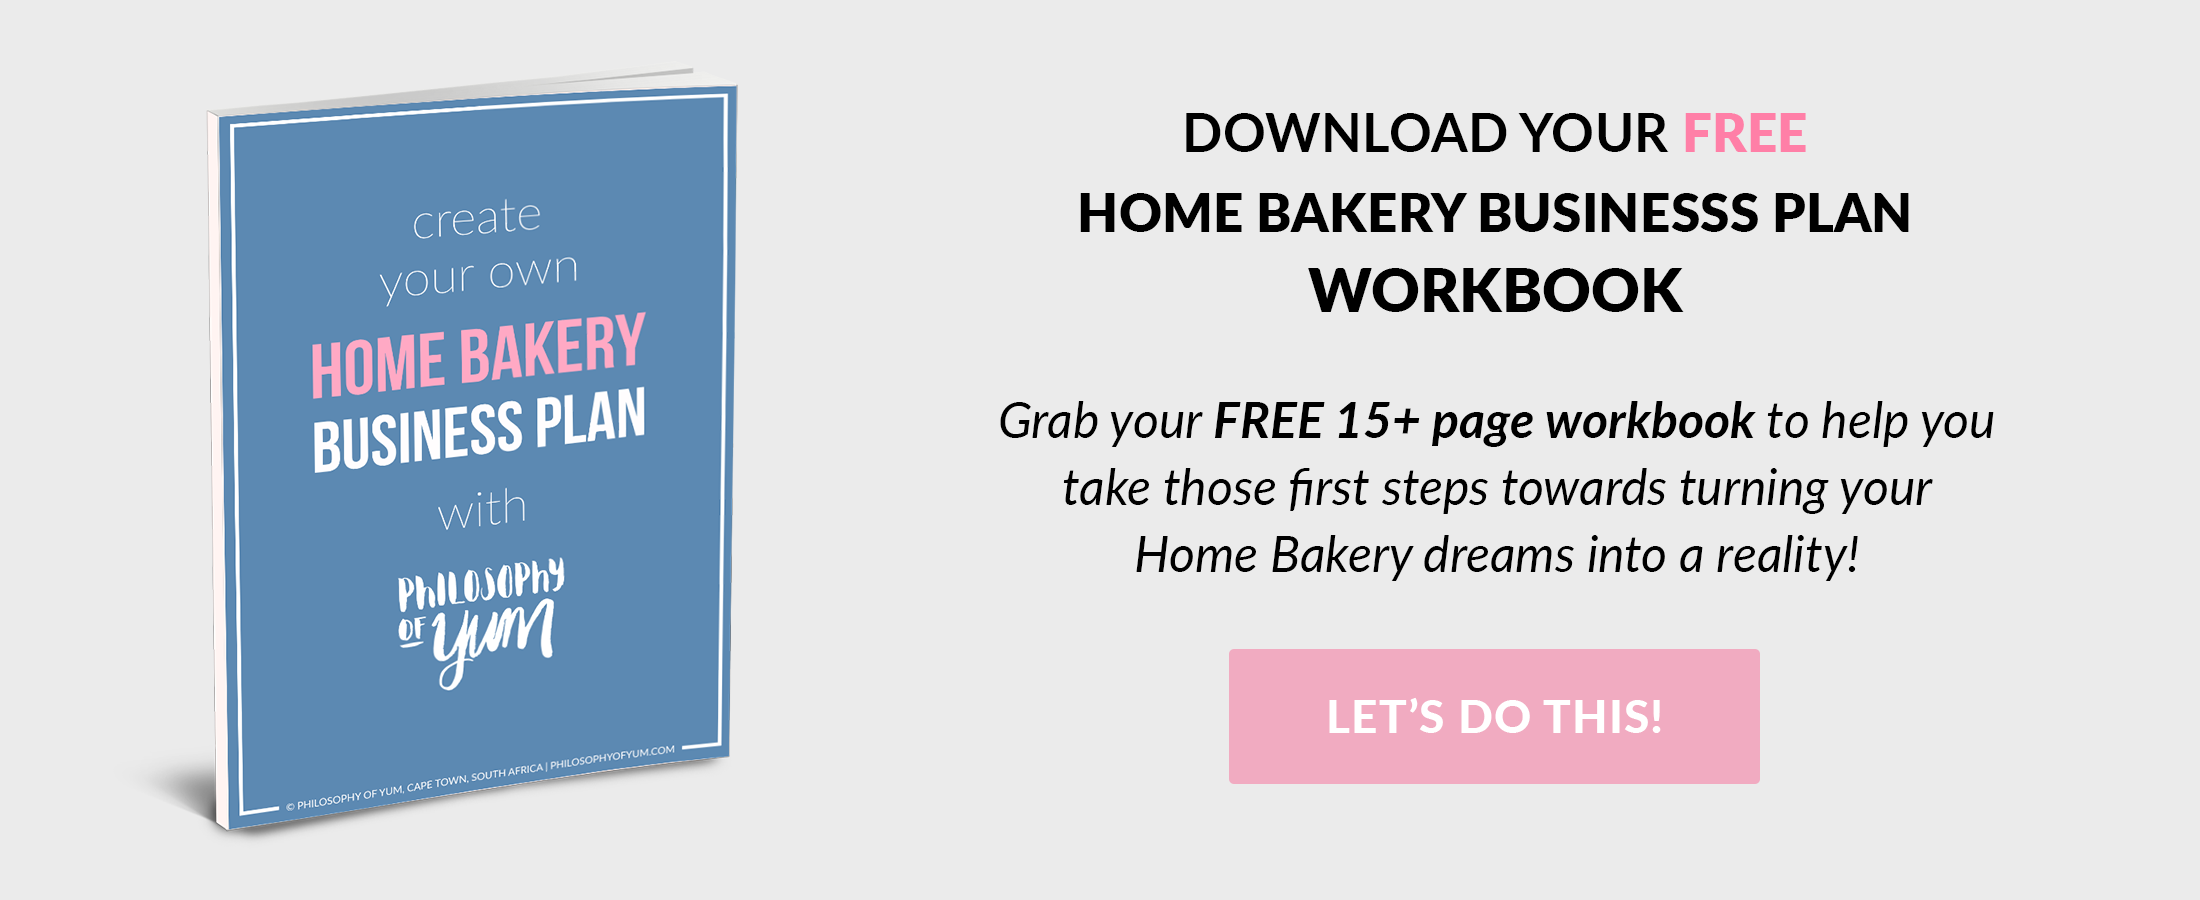 How to Create a Home Bakery Business Plan (Workbook Included!)